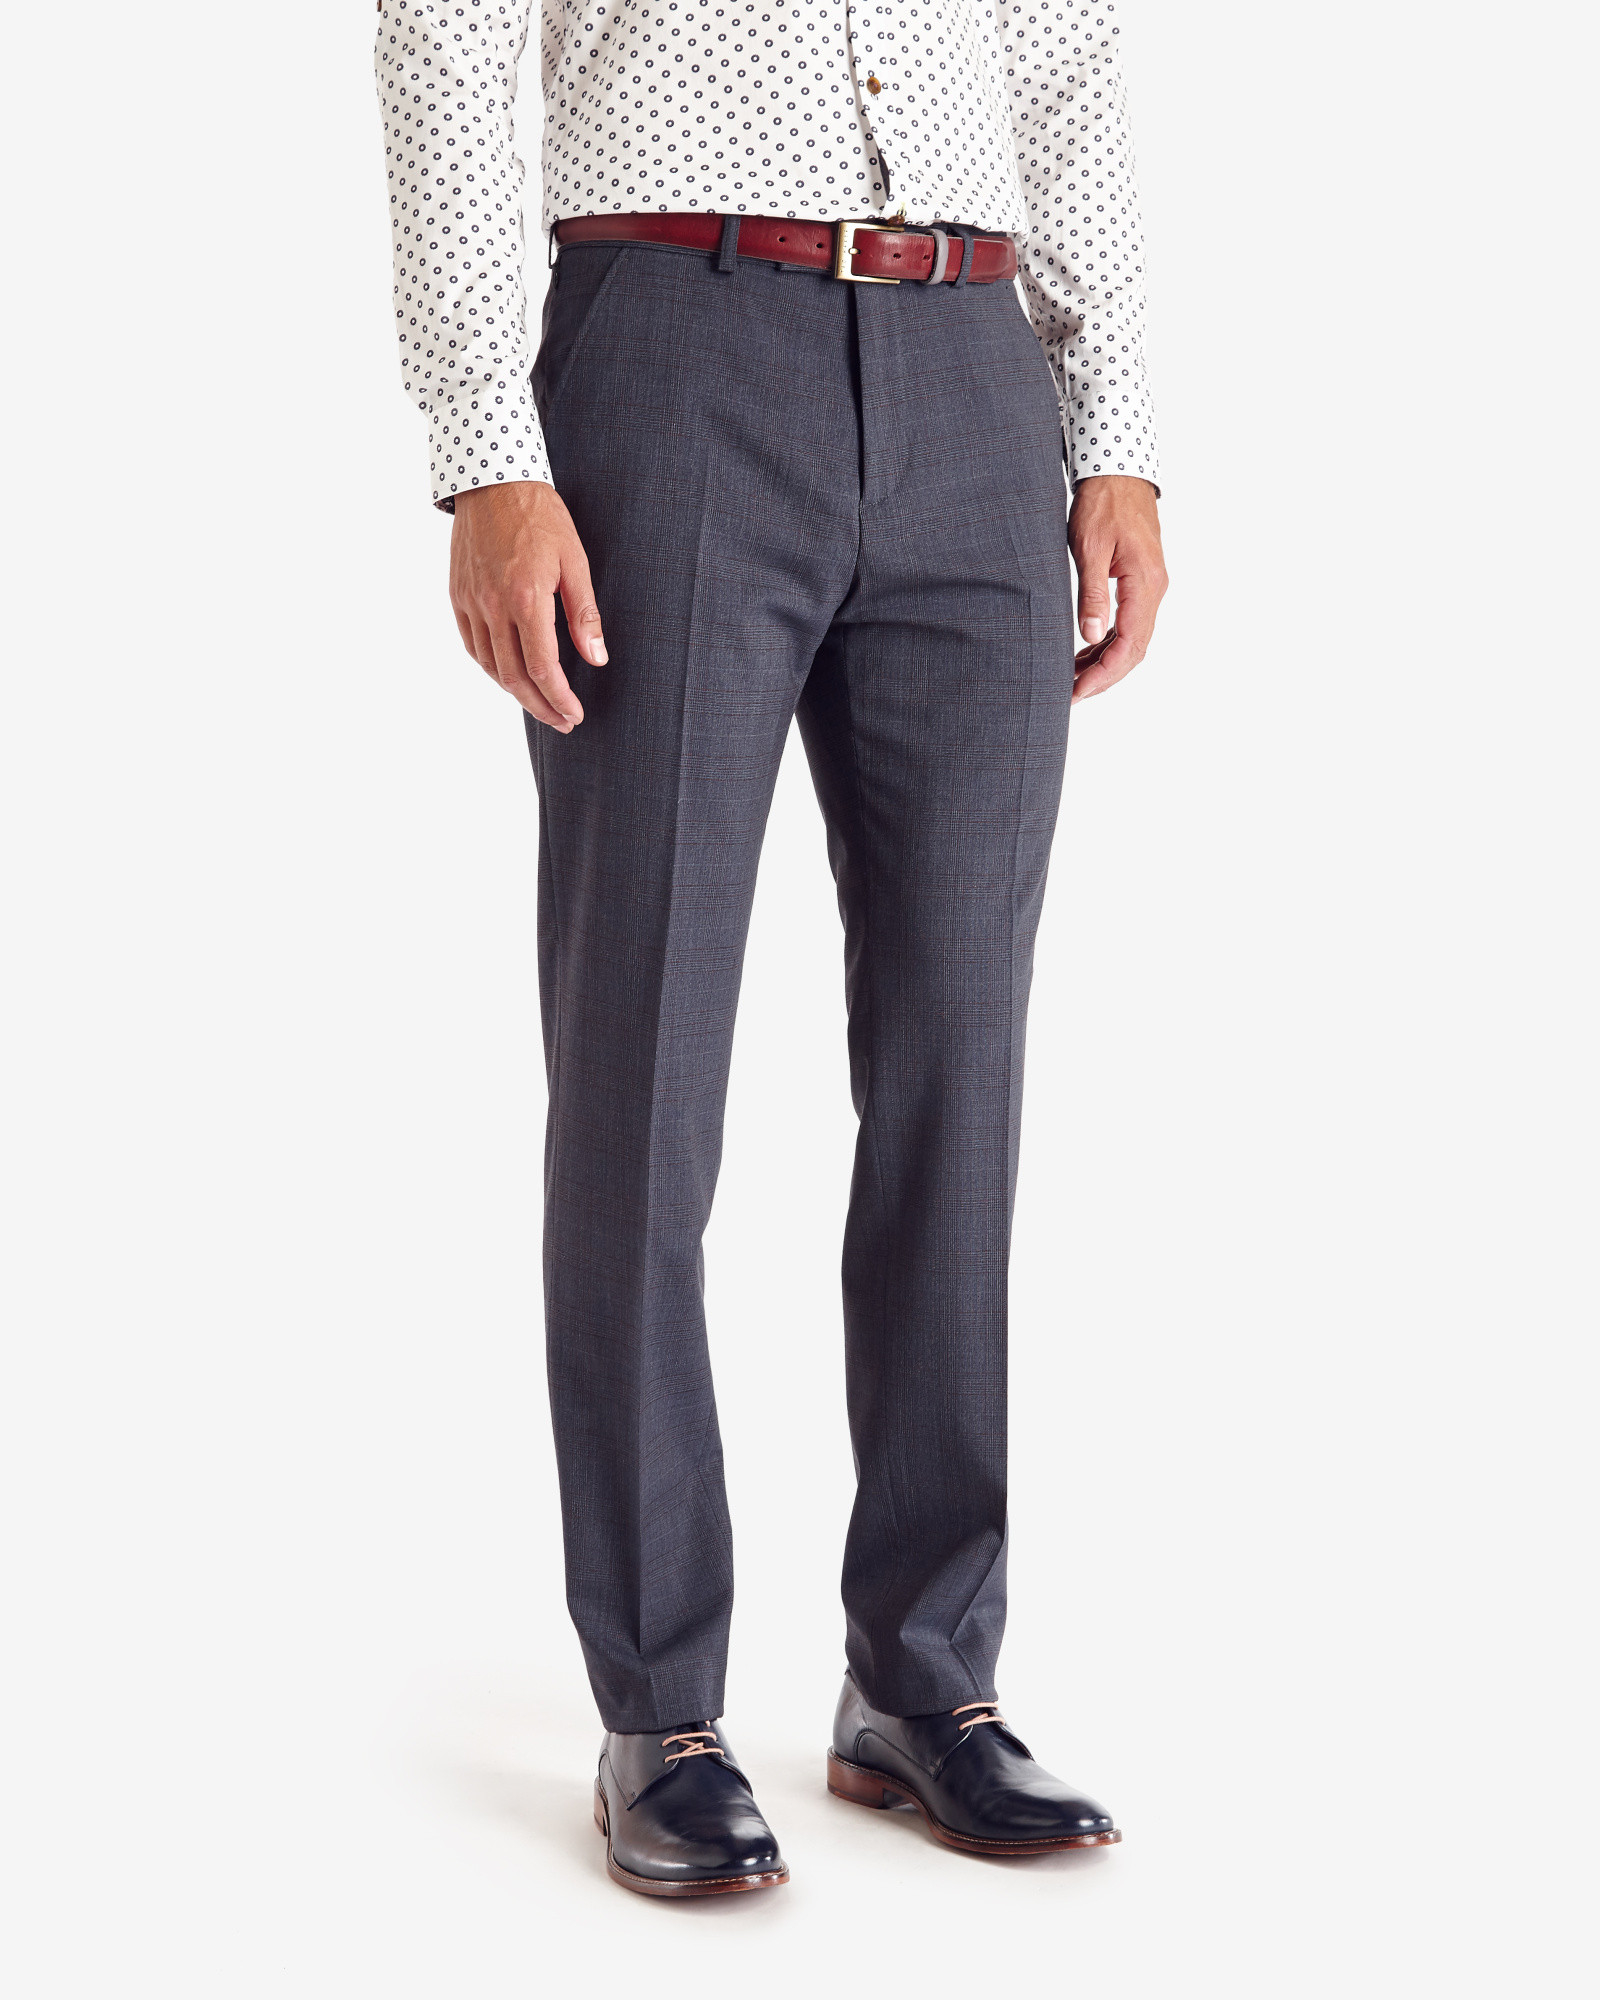 Suit The Trousers Checked Cycling Commuter